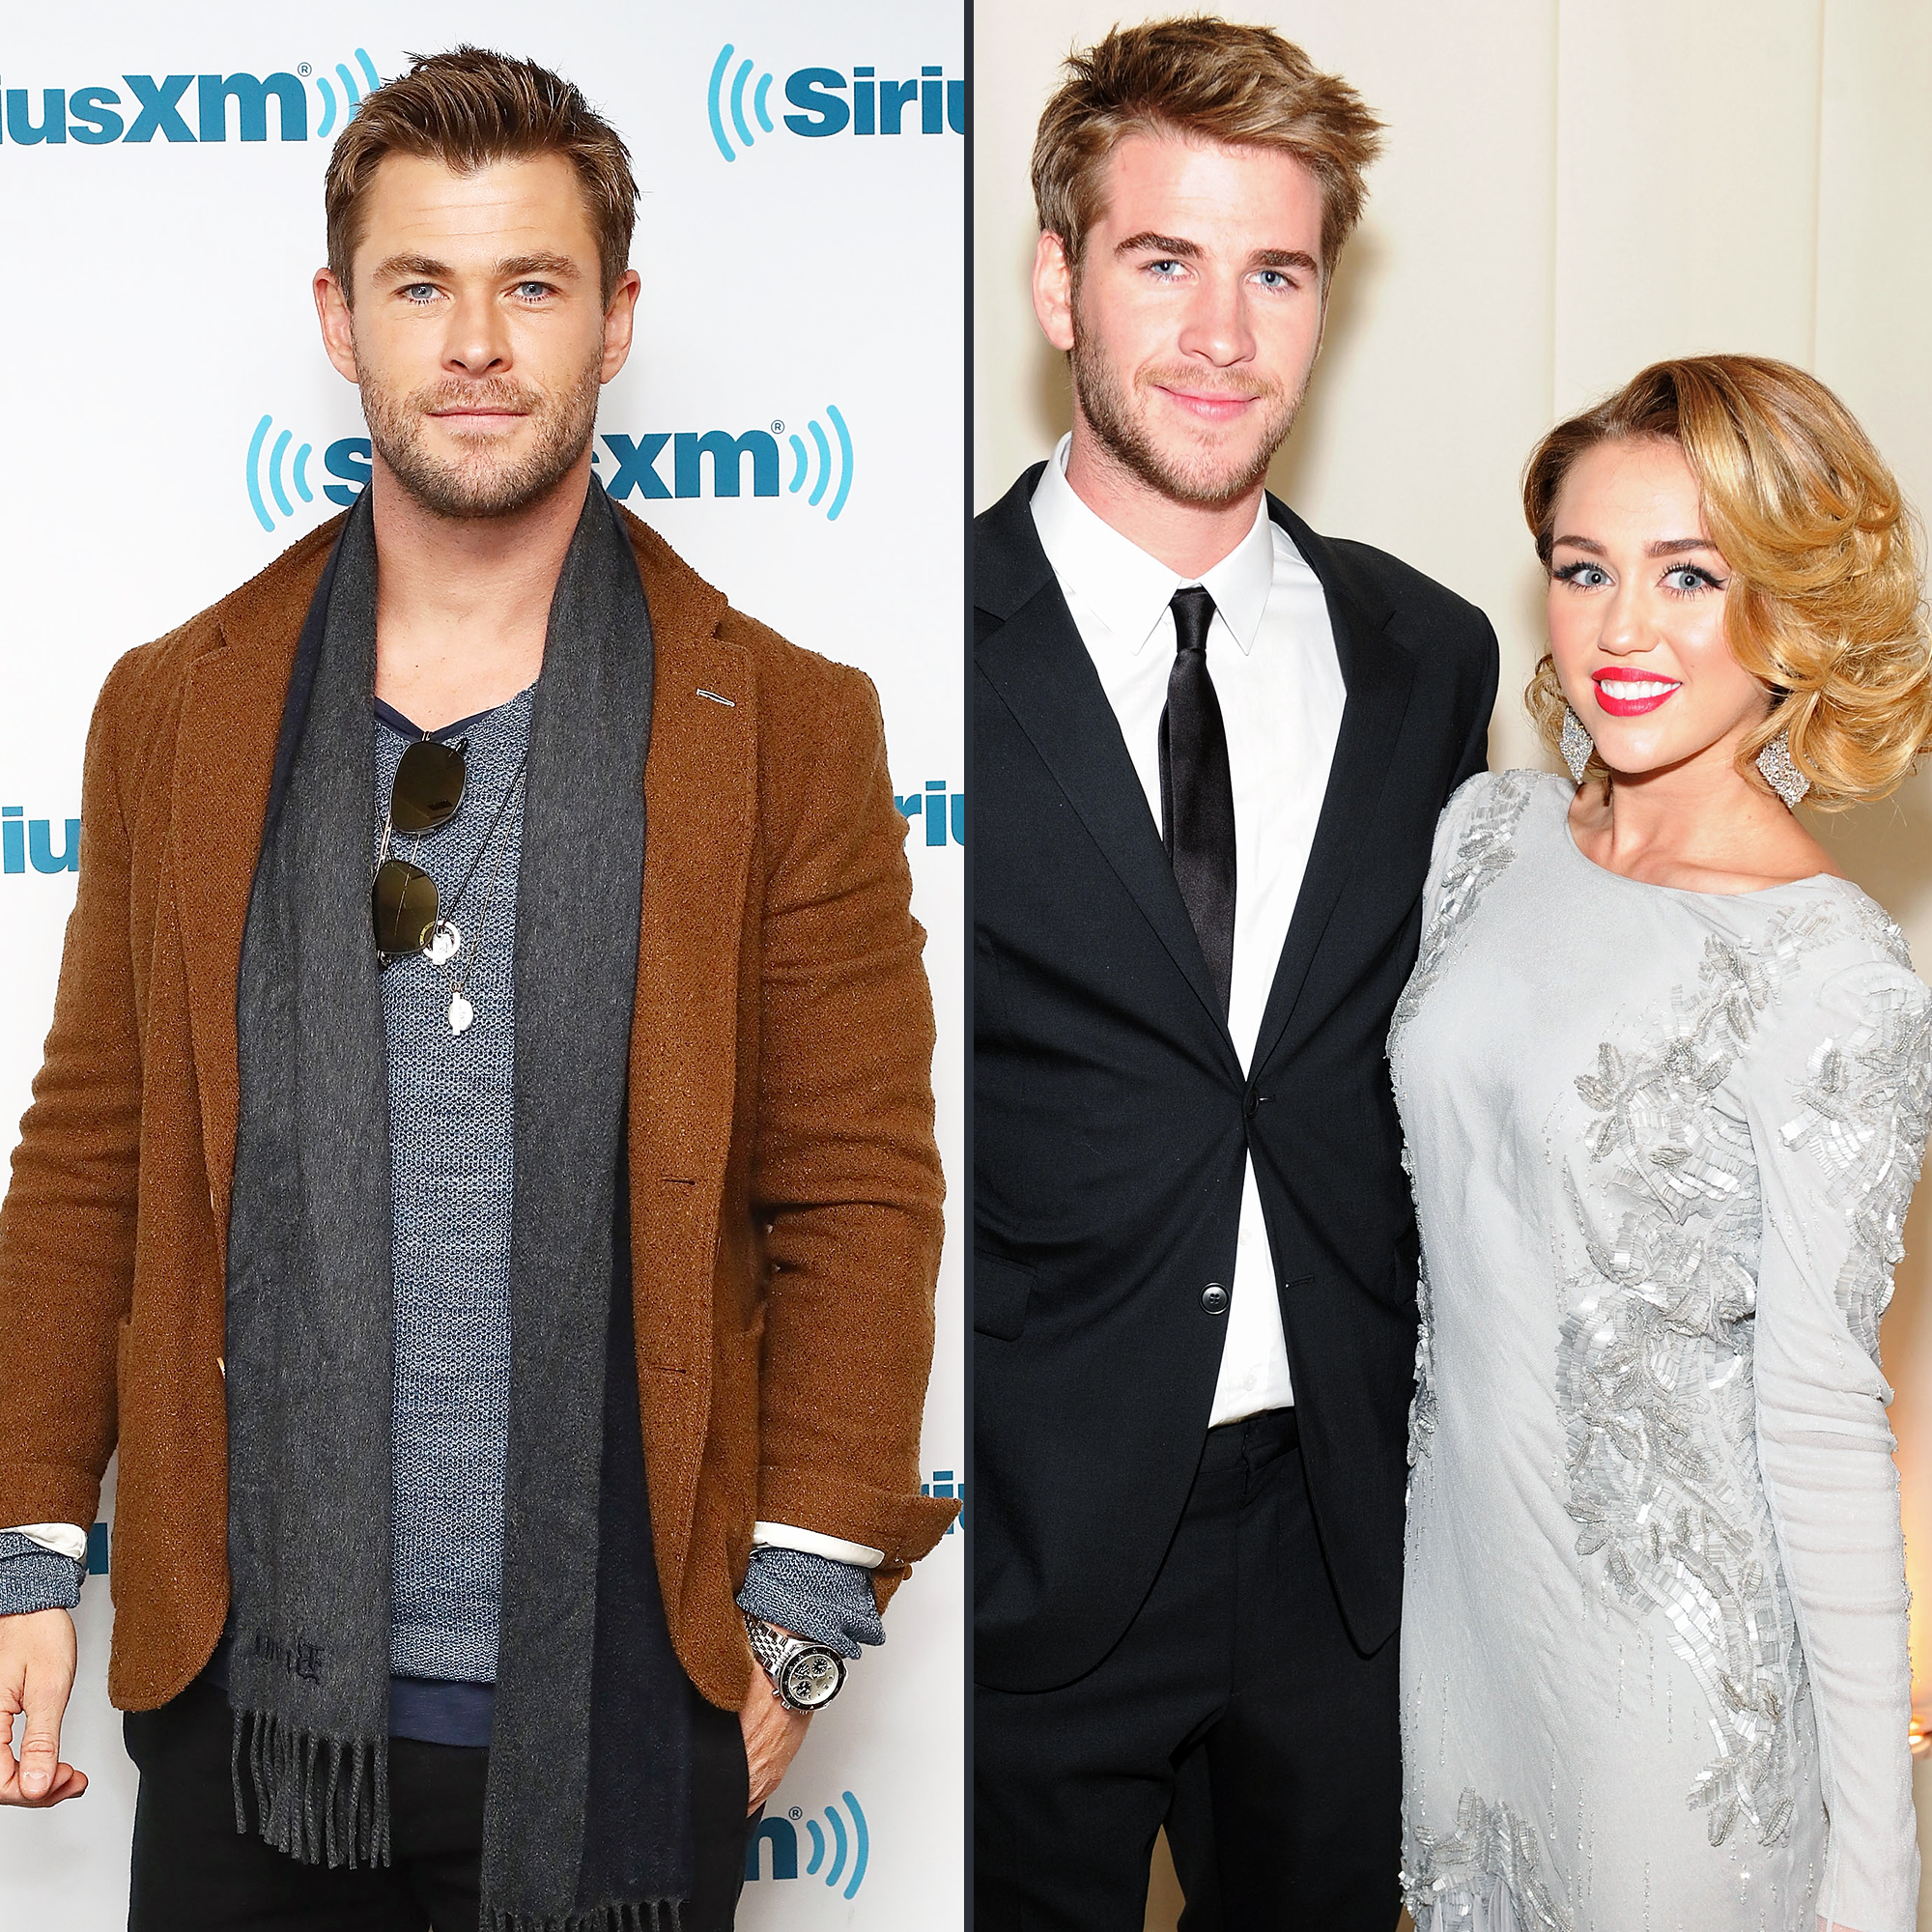 Was miley cyrus dating chris hemsworth